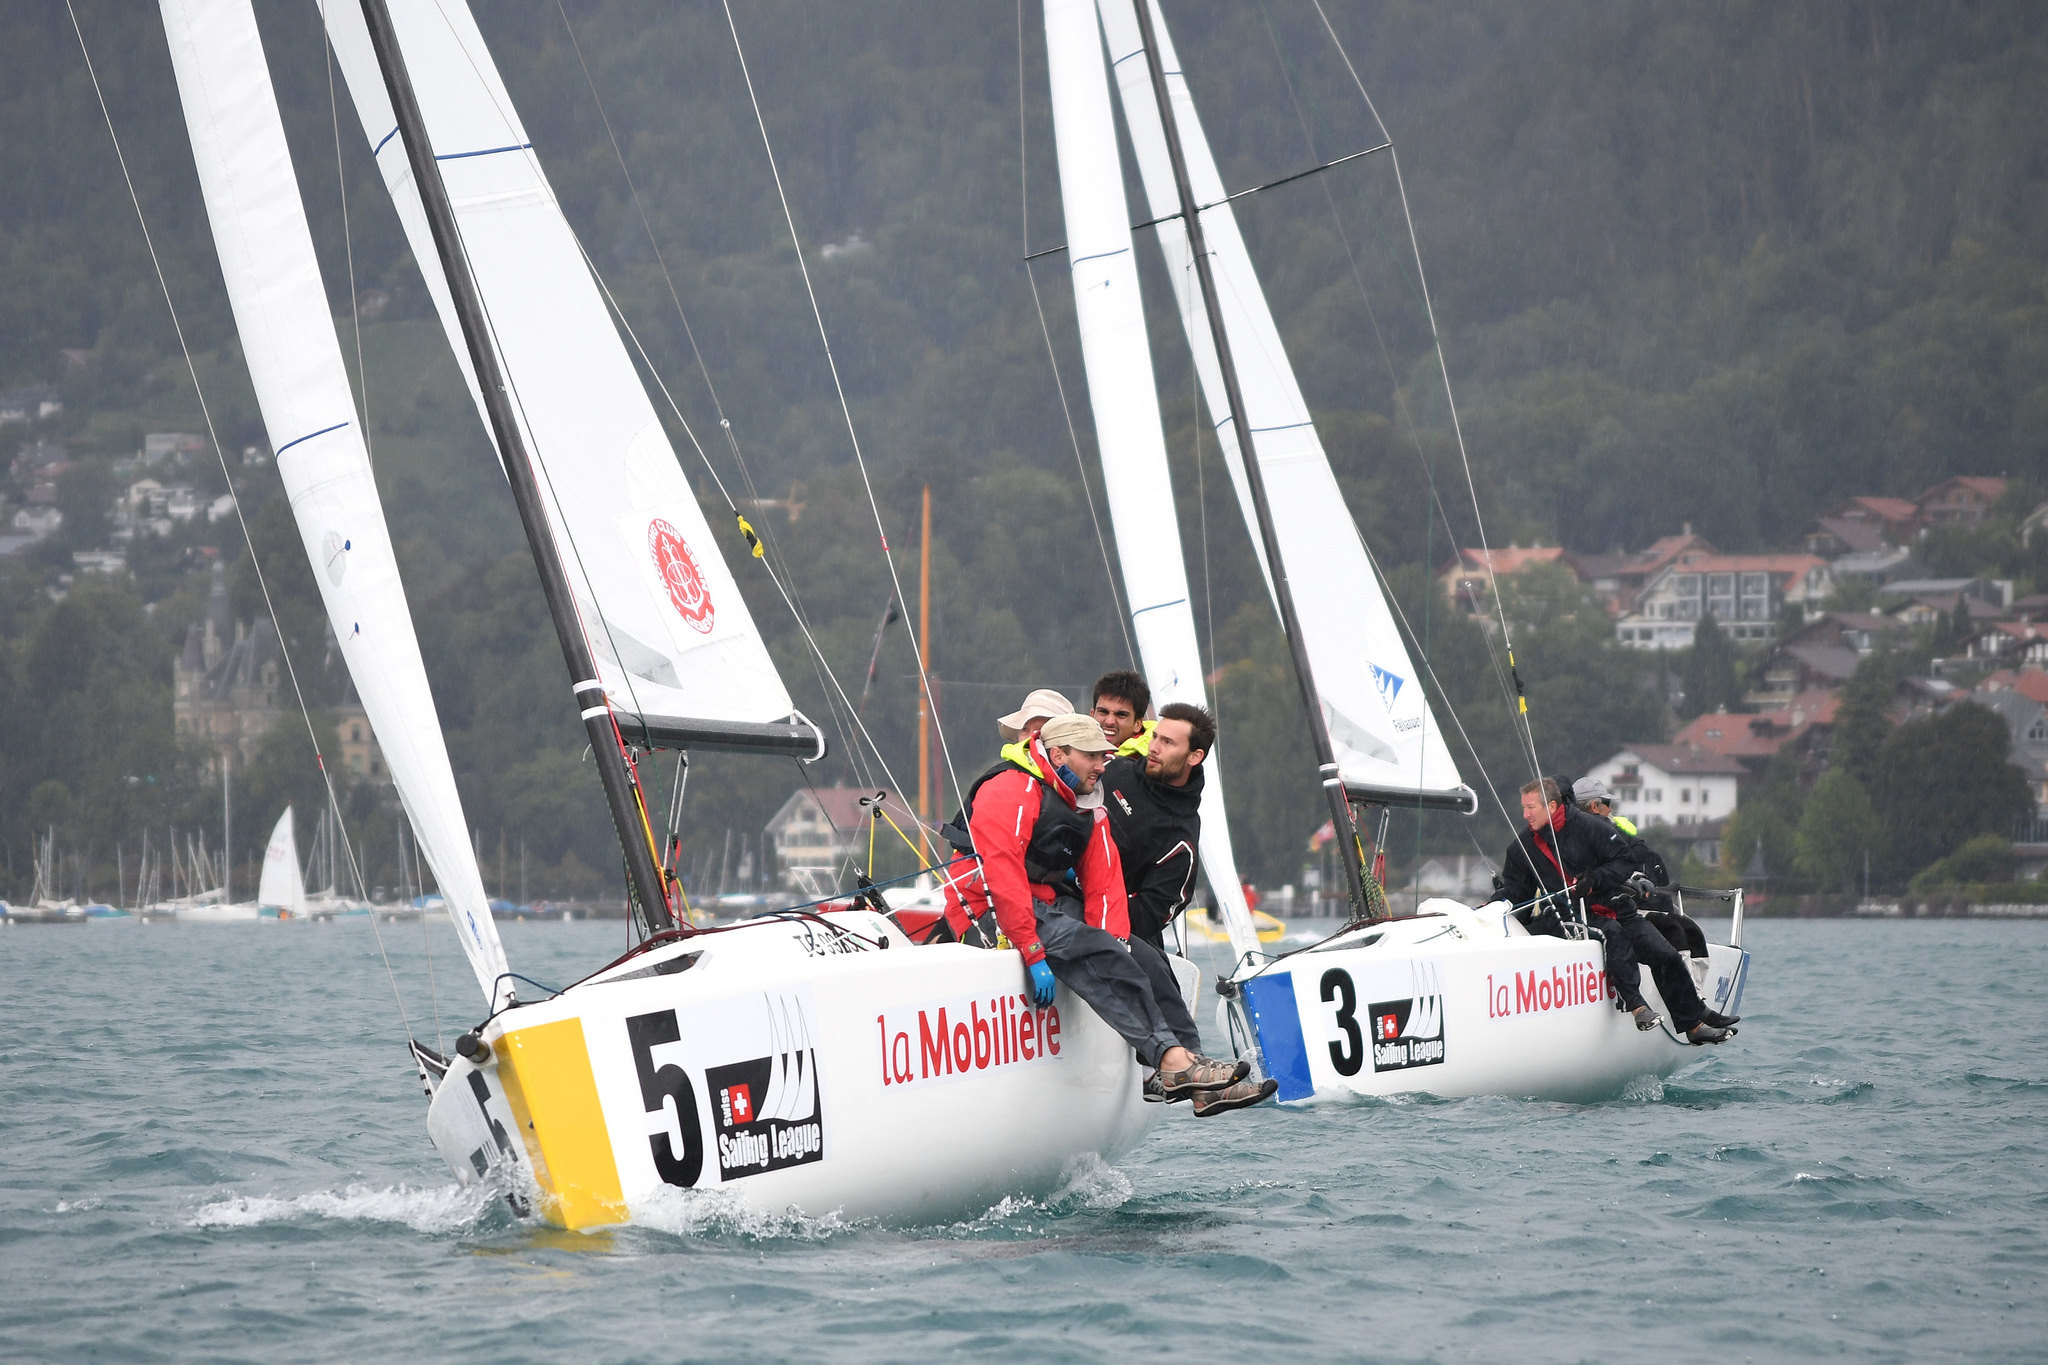 2017 Swisssailingleague 06